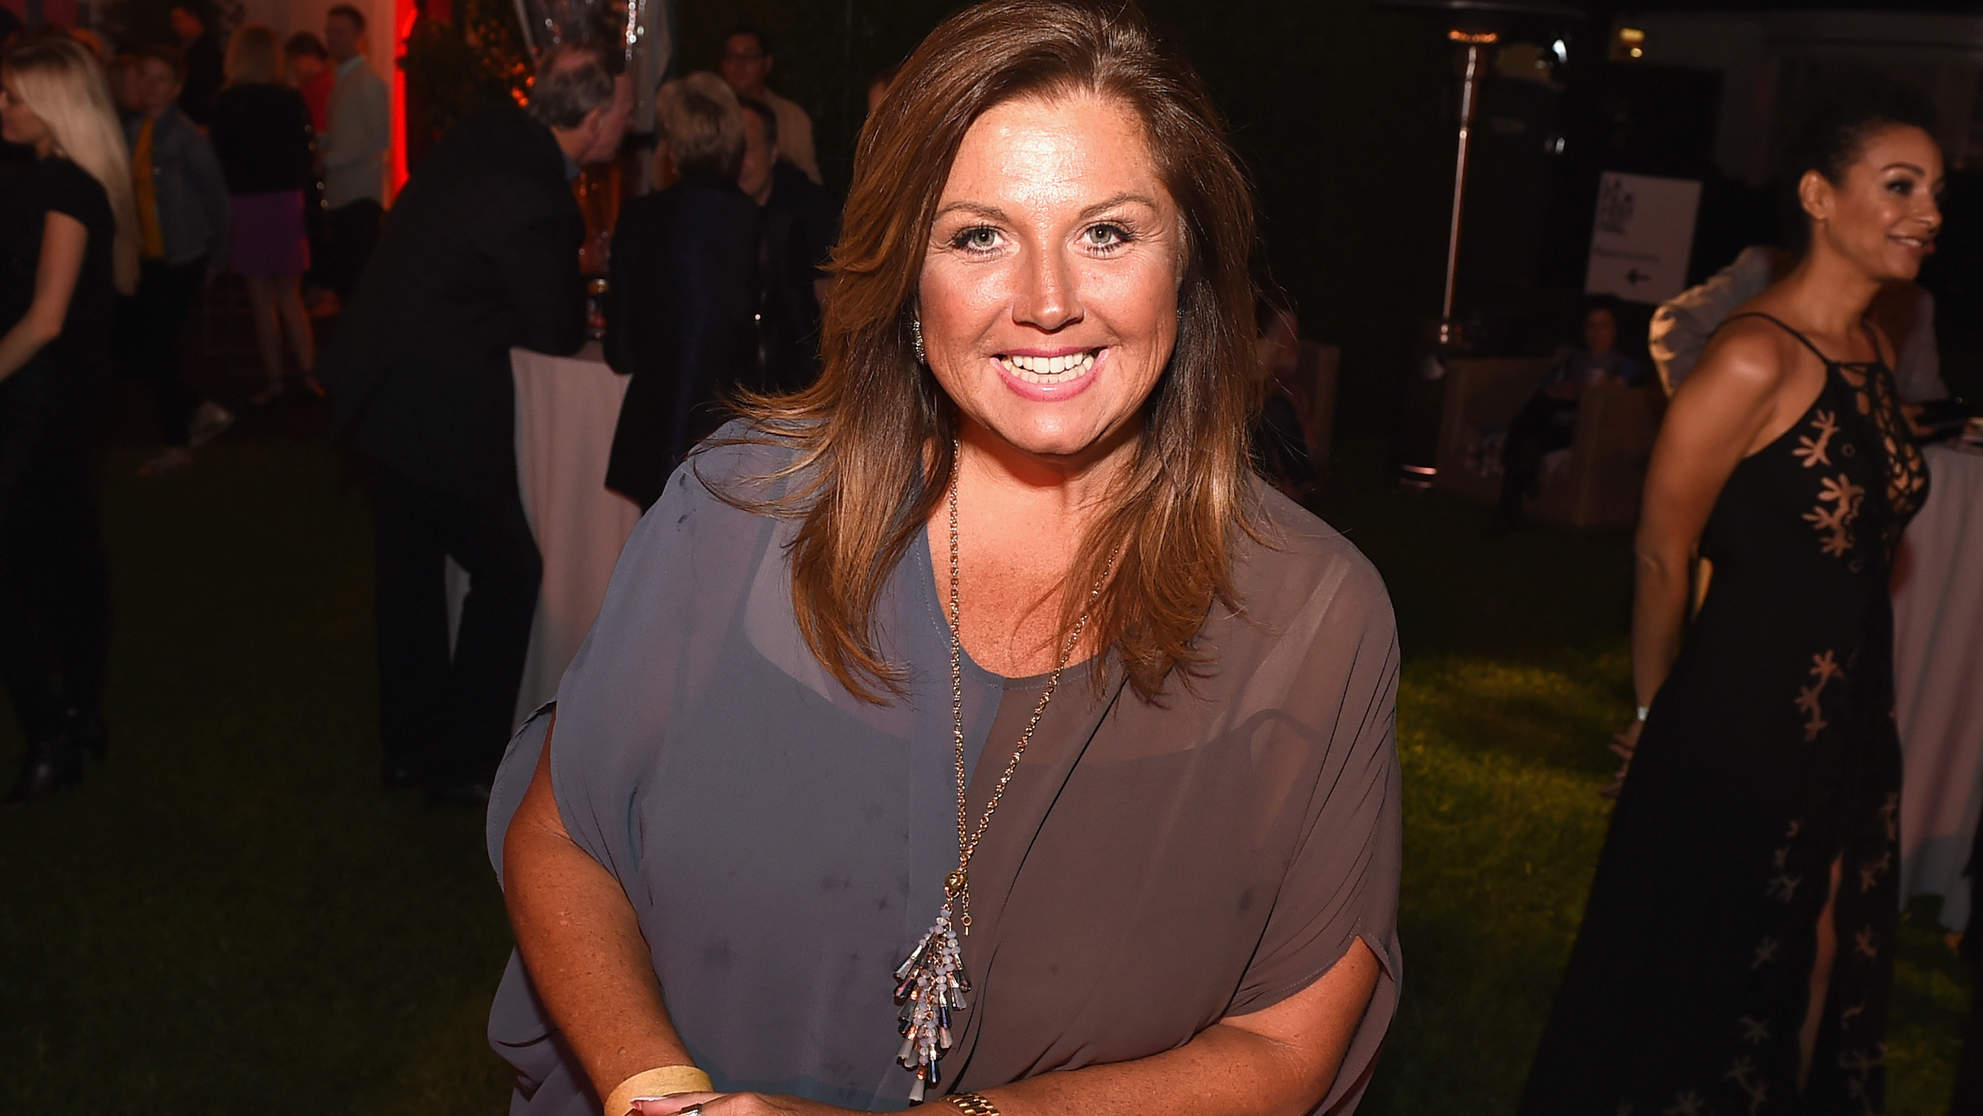 Abby Lee Miller's Surgeon Reveals Star 'Was Going to Die' After Developing Serious Spinal Infection